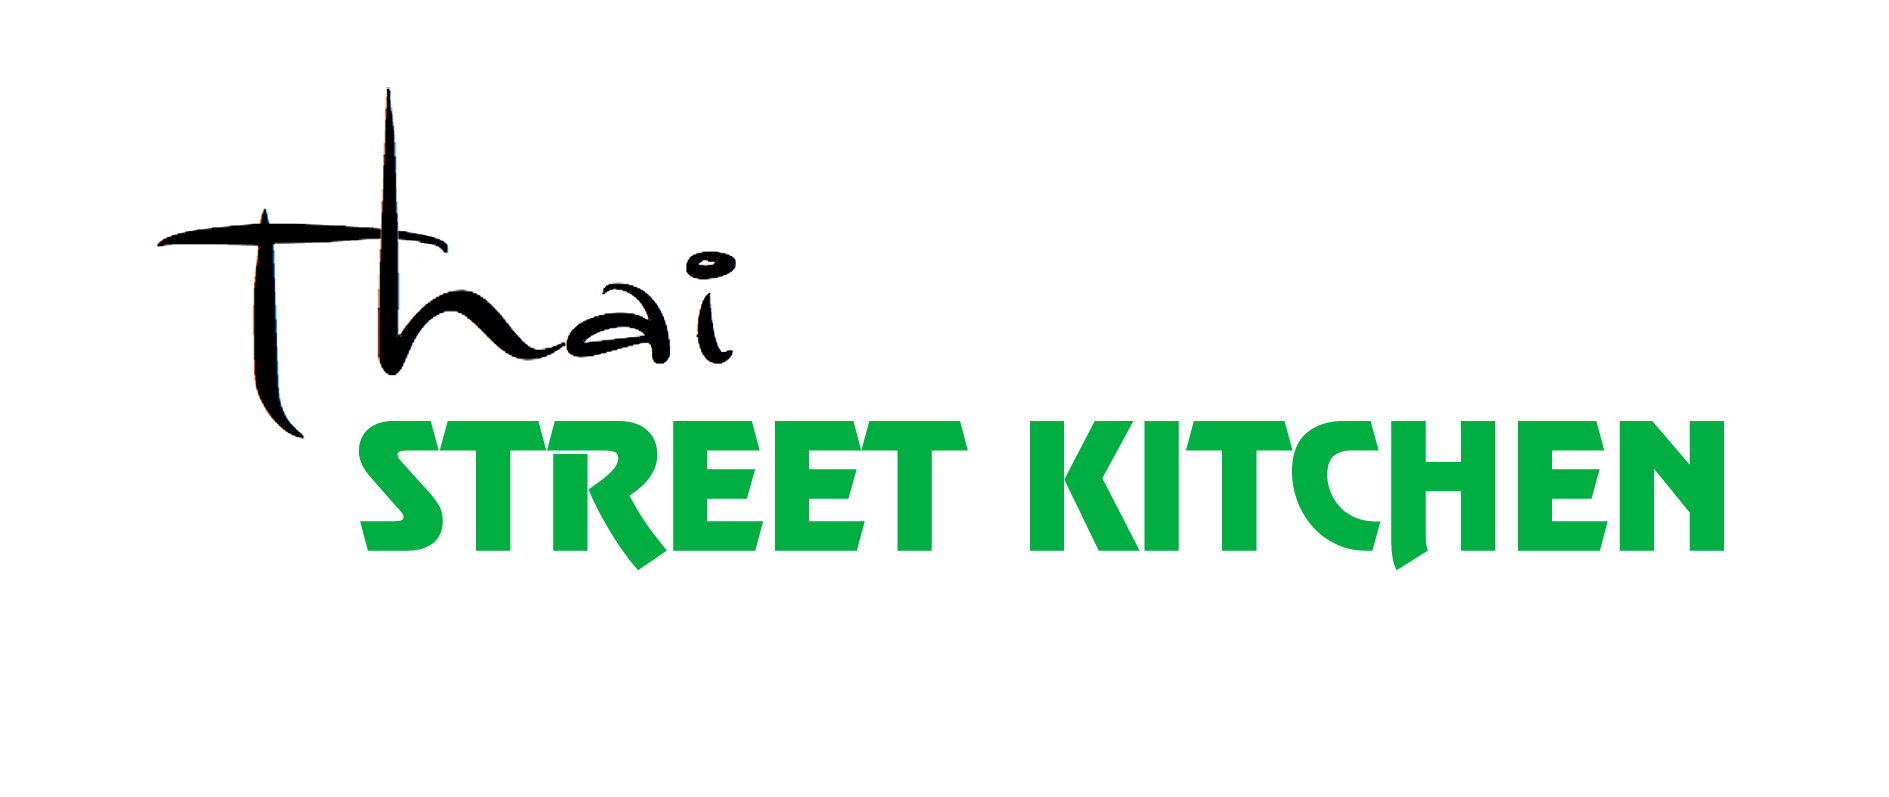 Thai Street Kitchen